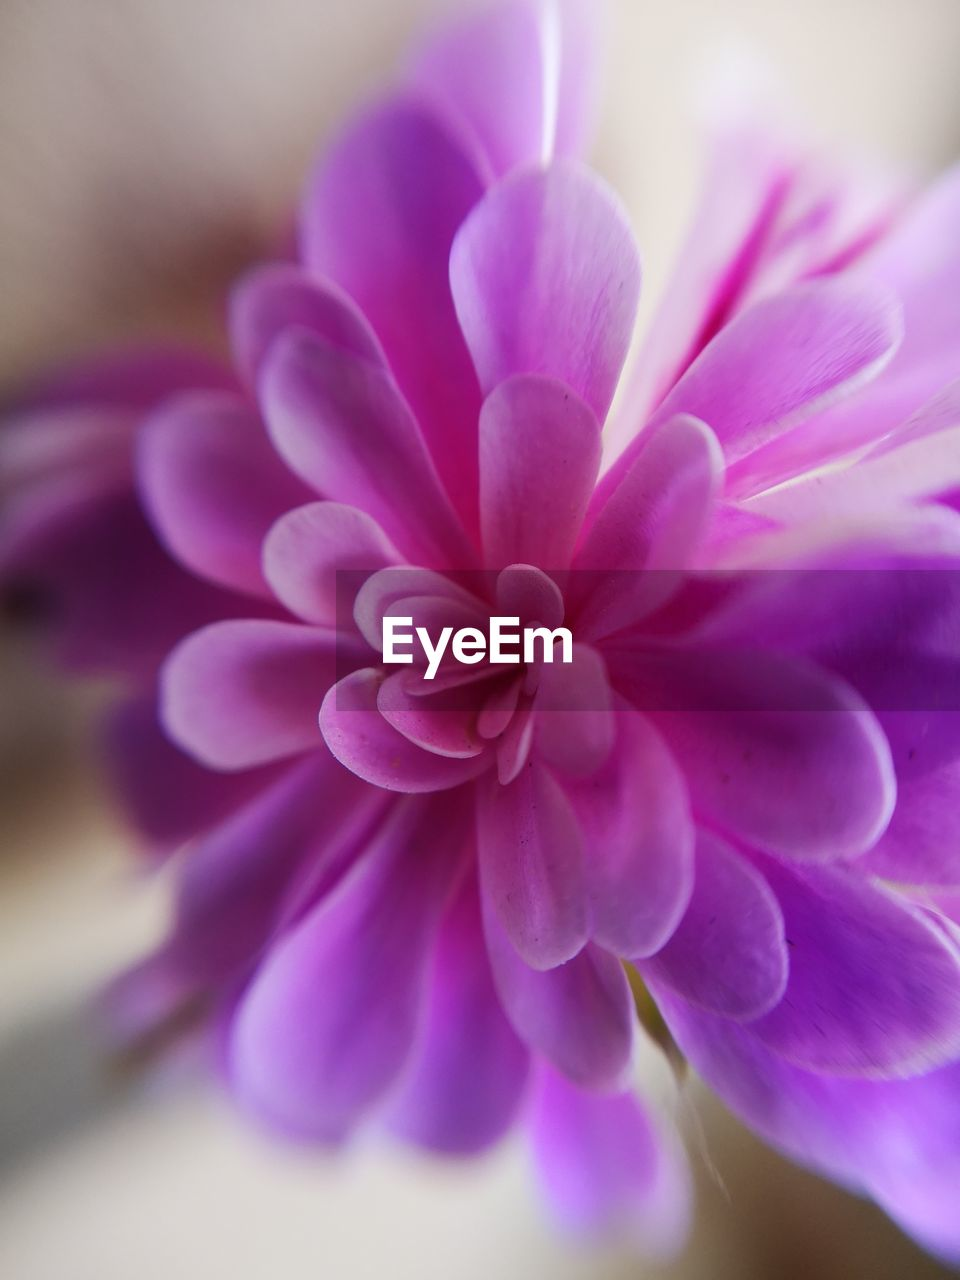 flower, flowering plant, plant, beauty in nature, close-up, fragility, vulnerability, petal, freshness, pink color, inflorescence, growth, purple, flower head, selective focus, nature, no people, focus on foreground, day